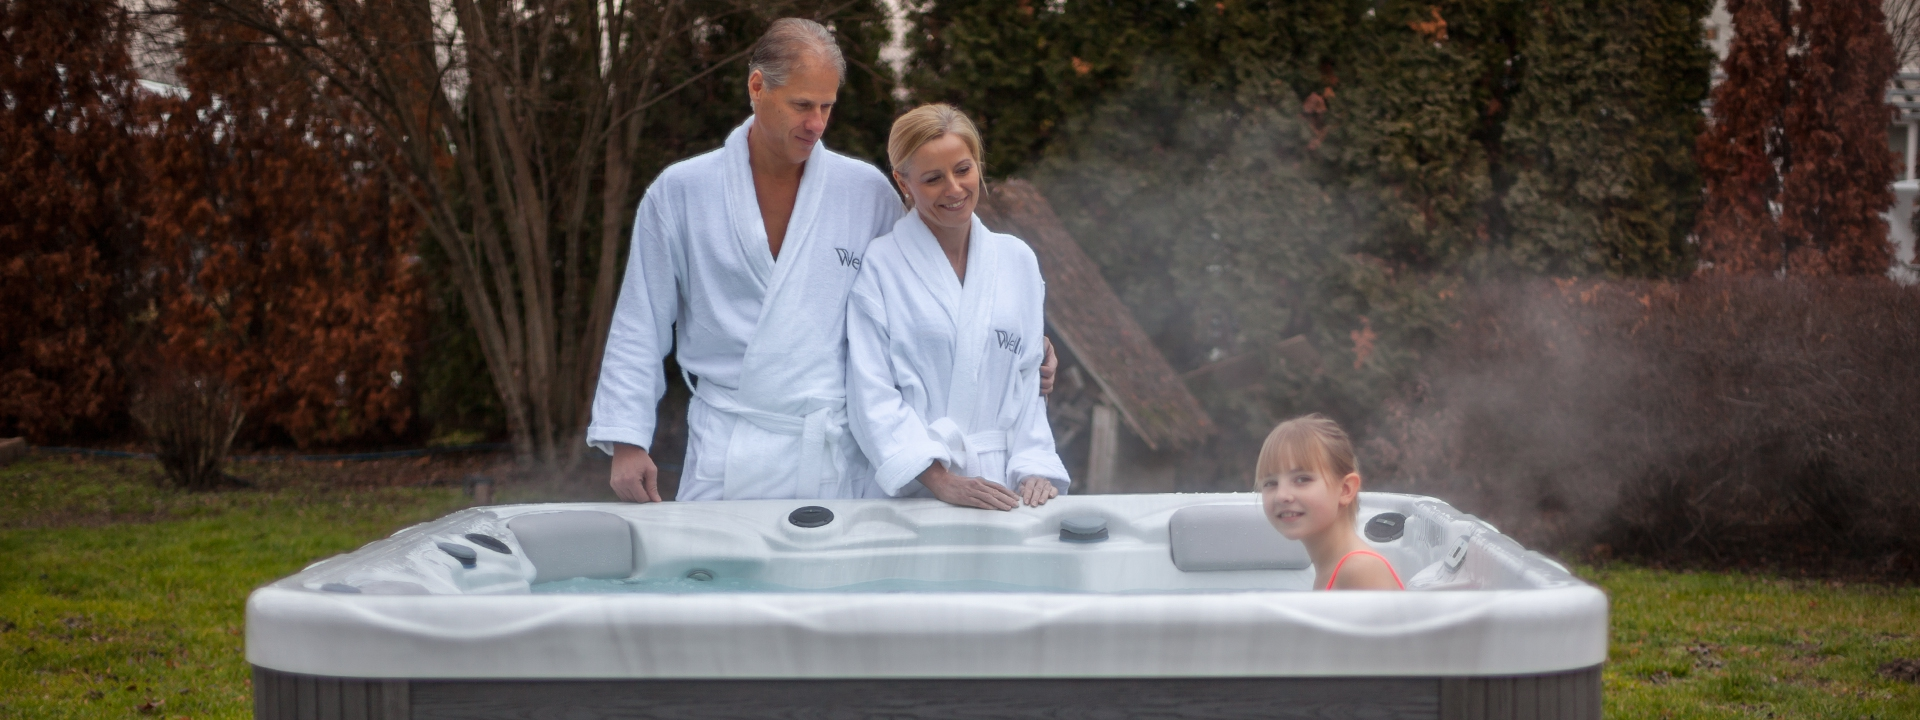 Family using a hot tub